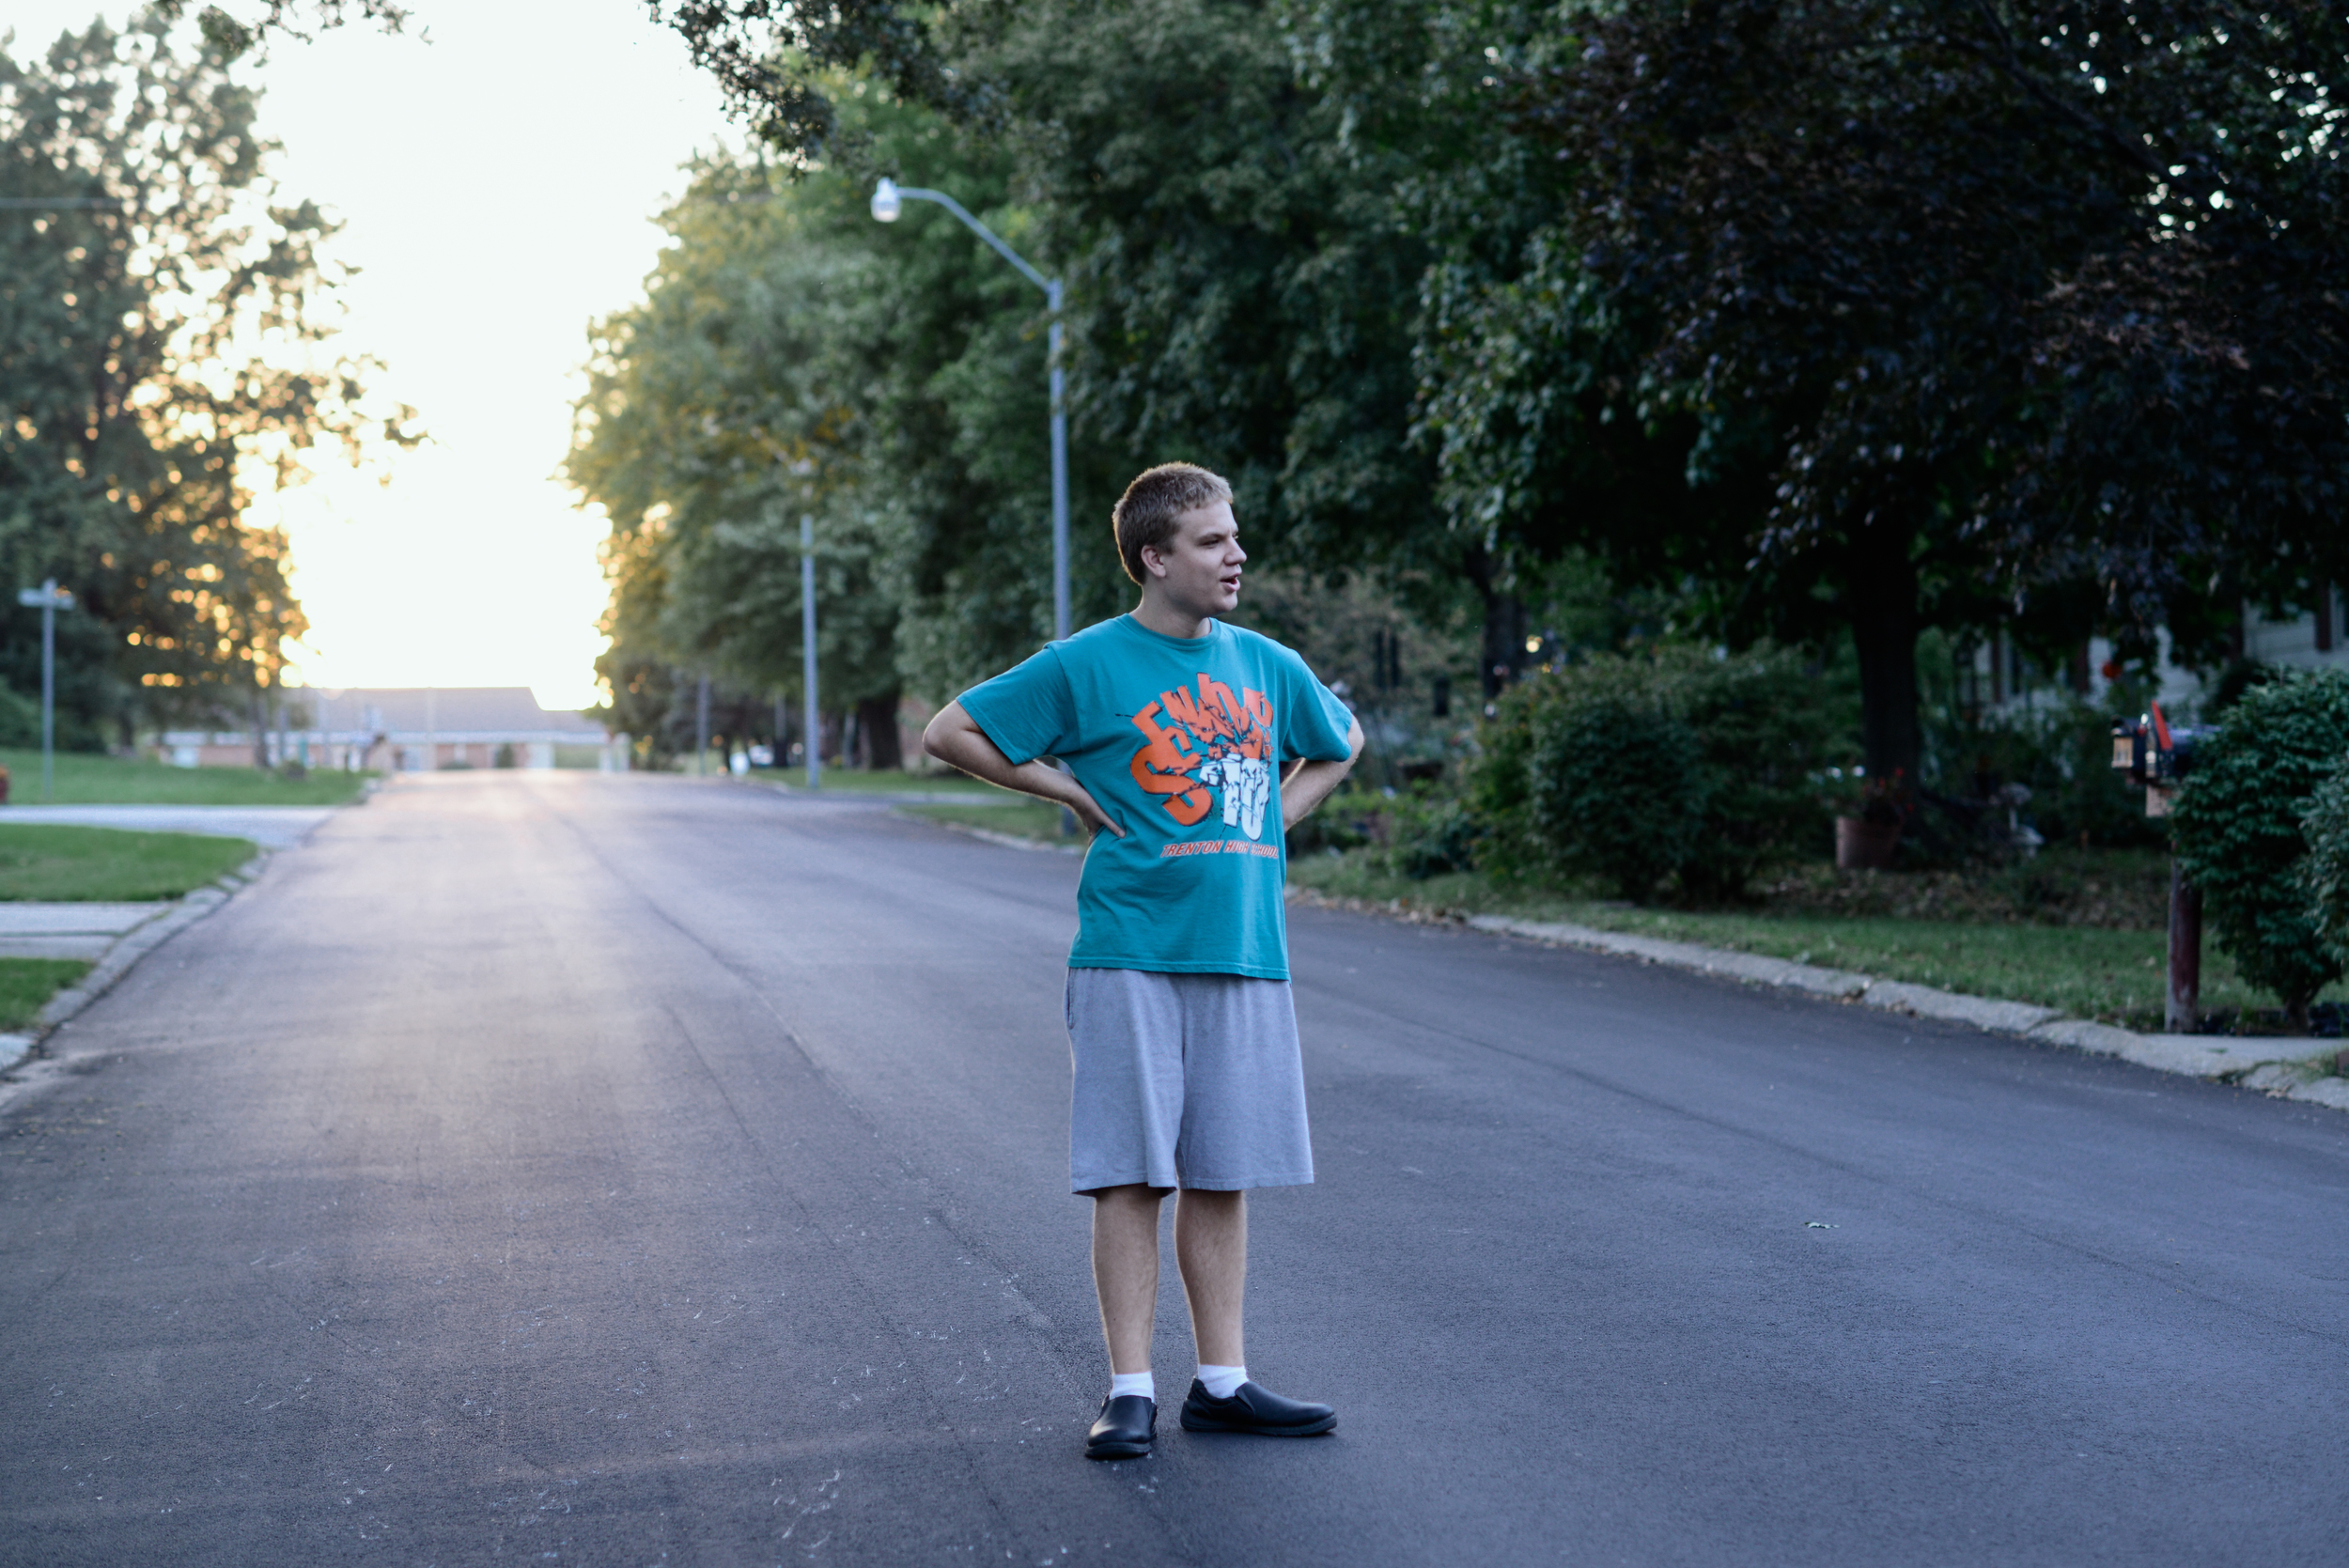 Trenton, Missouri. 2013.  Out on a walk near his home, Dalton visits with neighbors to talk sports and exchange trading cards.